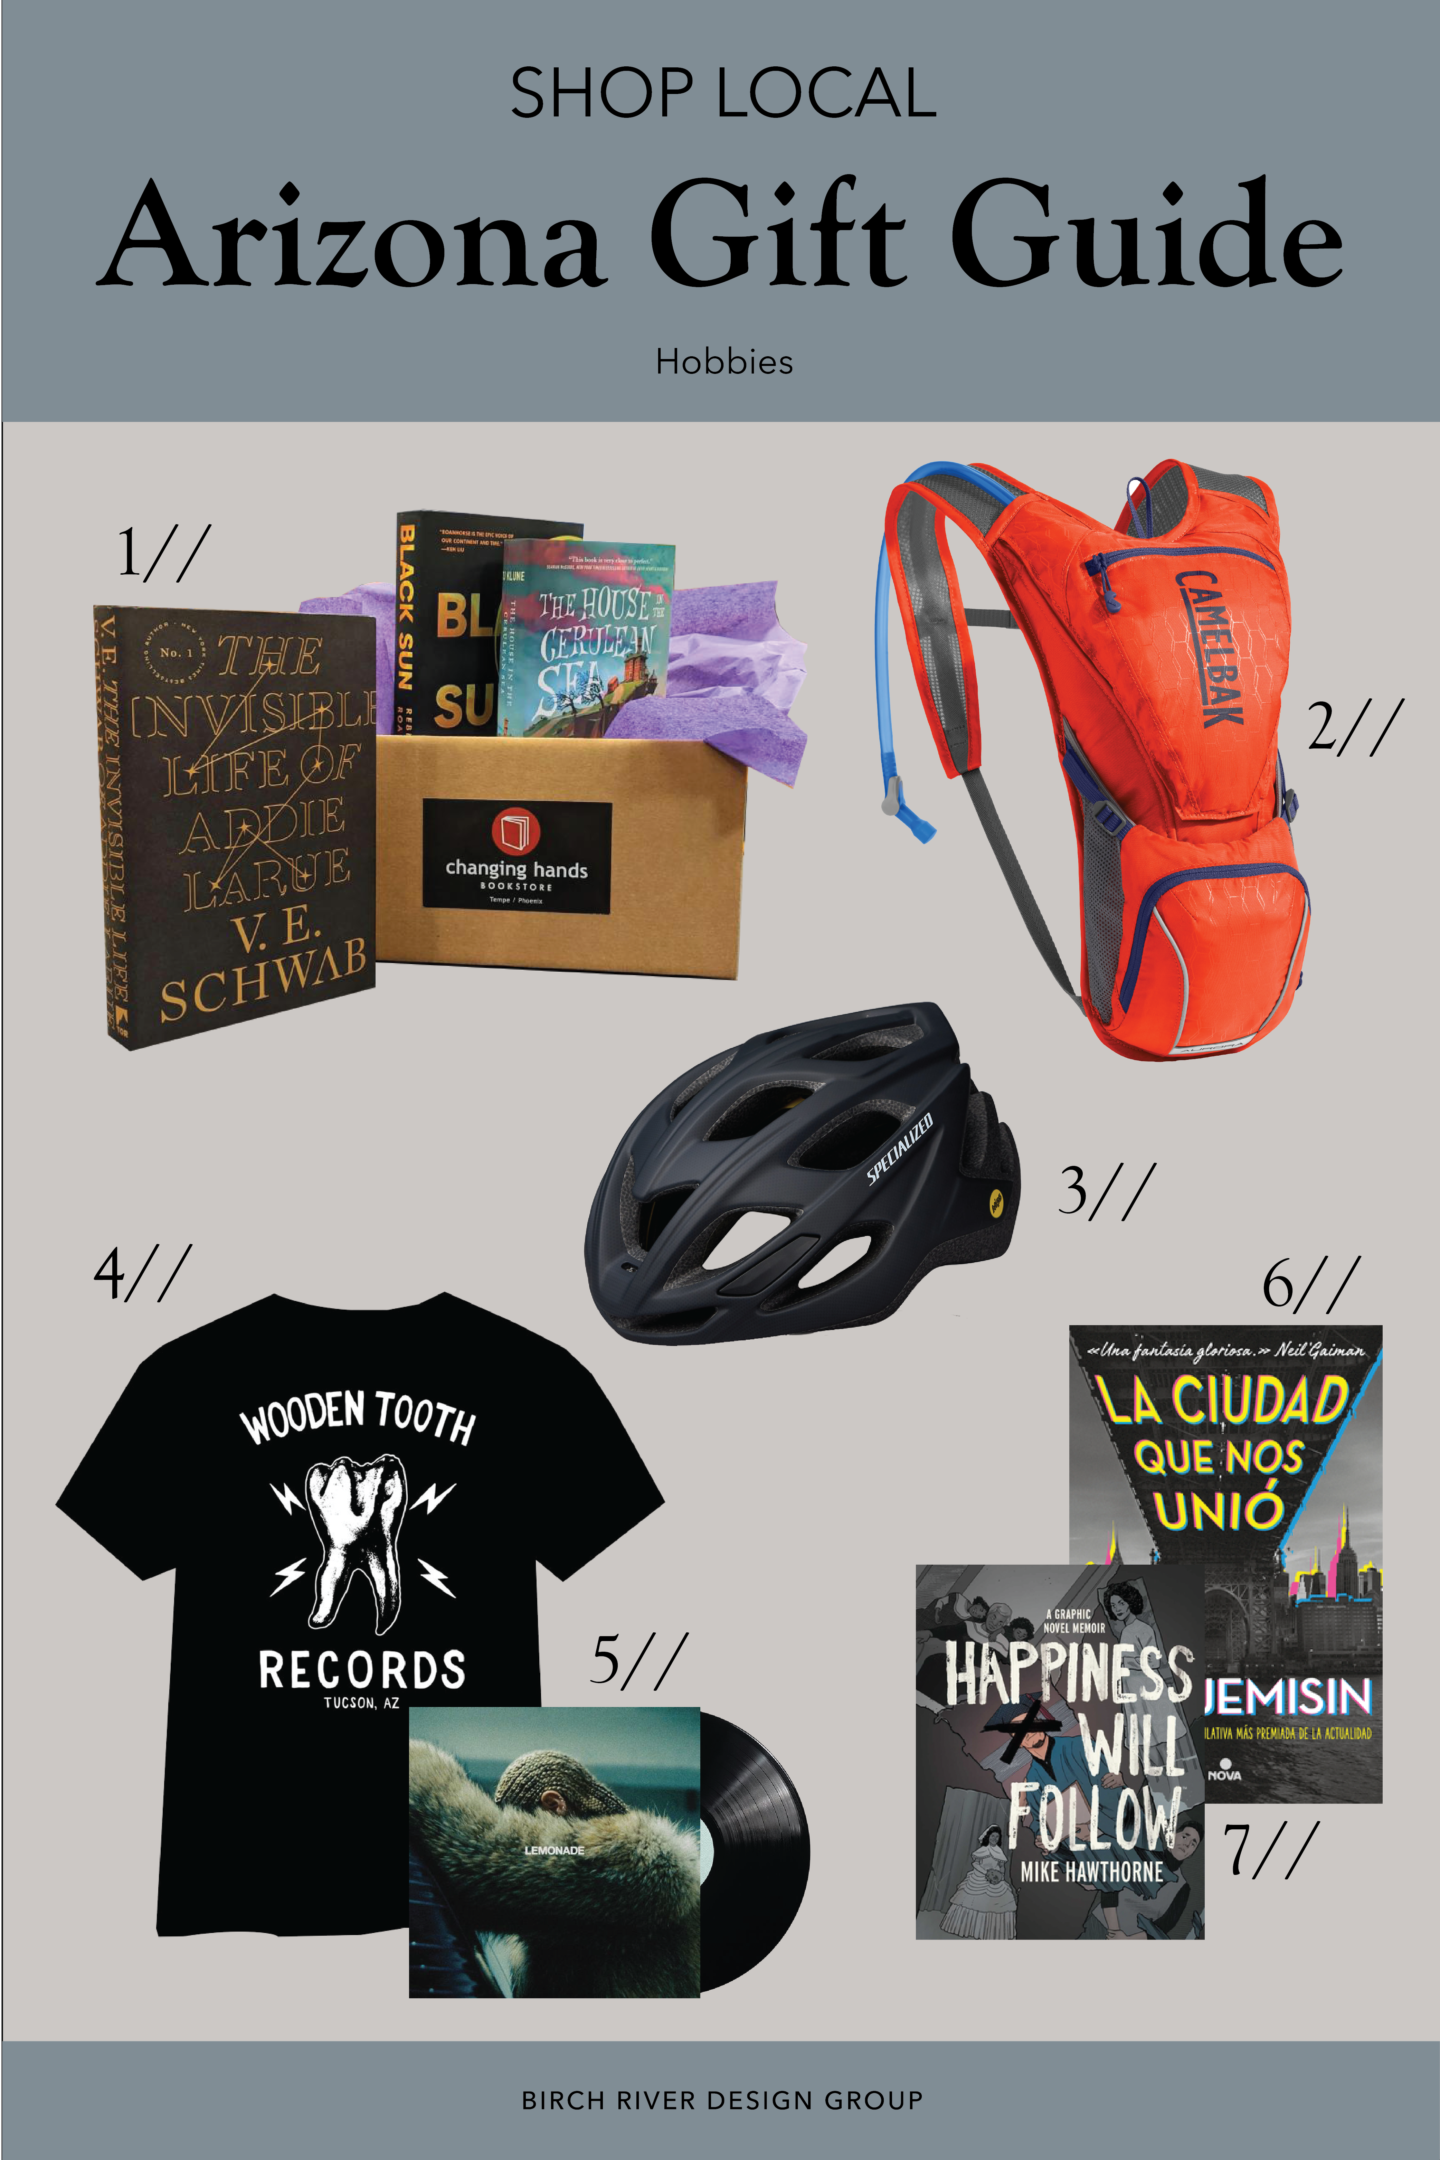 Collage of hobby-related gift ideas from Arizona local businesses.